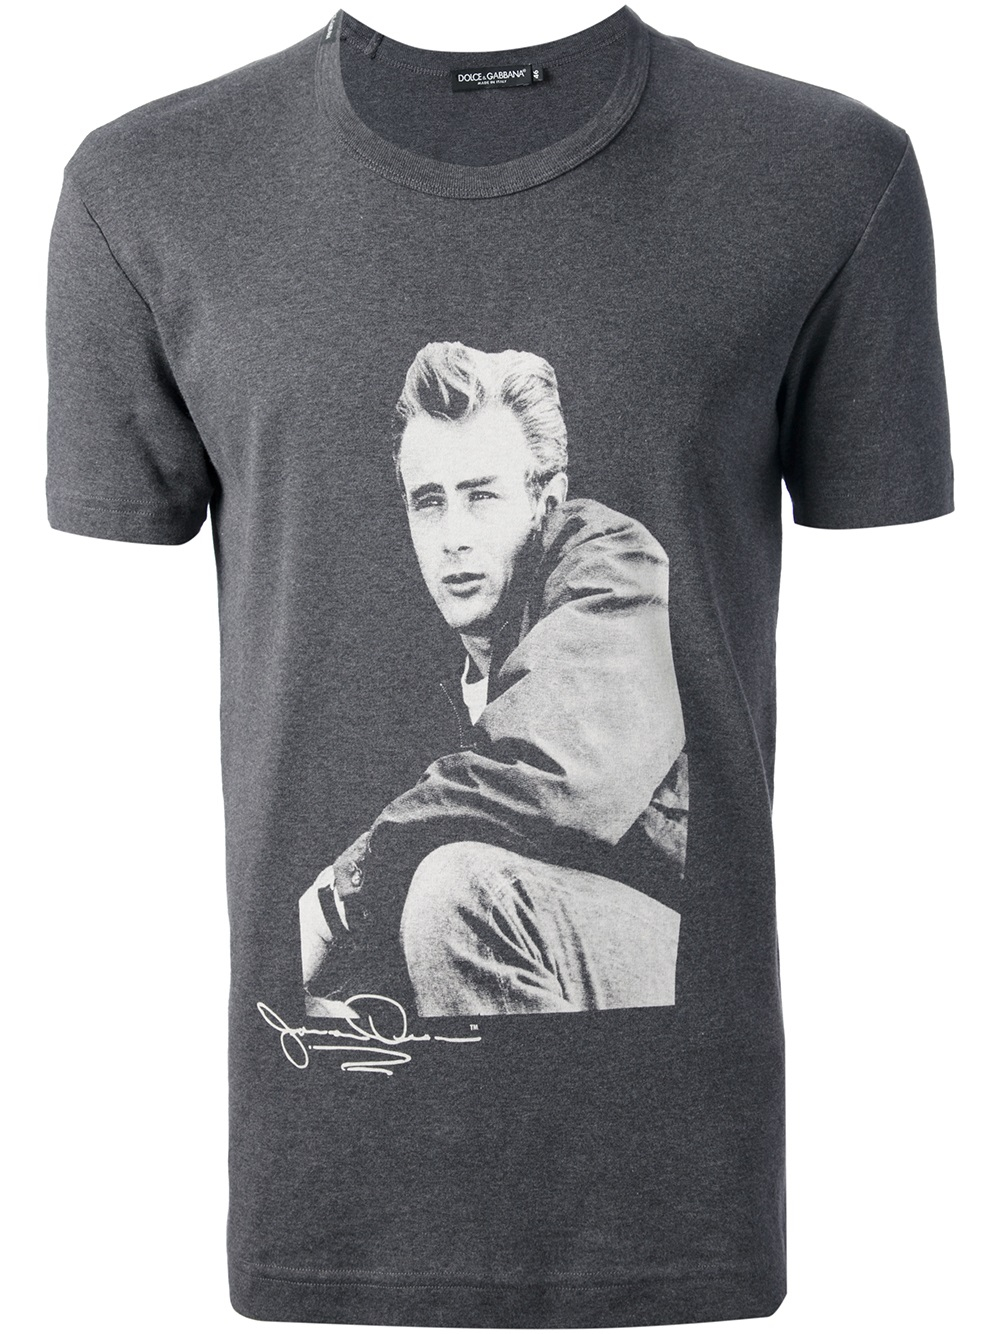 This James Dean T-shirt is a great % preshrunk cotton t-shirt for E1SYNDICATE T-SHIRT JAMES DEAN ICON MARILYN MONROE ELVIS ELEVEN S-XL. by E1SYNDICATE. $ $ 19 Product Features E1Syndicate High Quality Streetwear T-Shirt. Previous Page 1 2 3 8 Next Page. Show results for. Novelty & More.